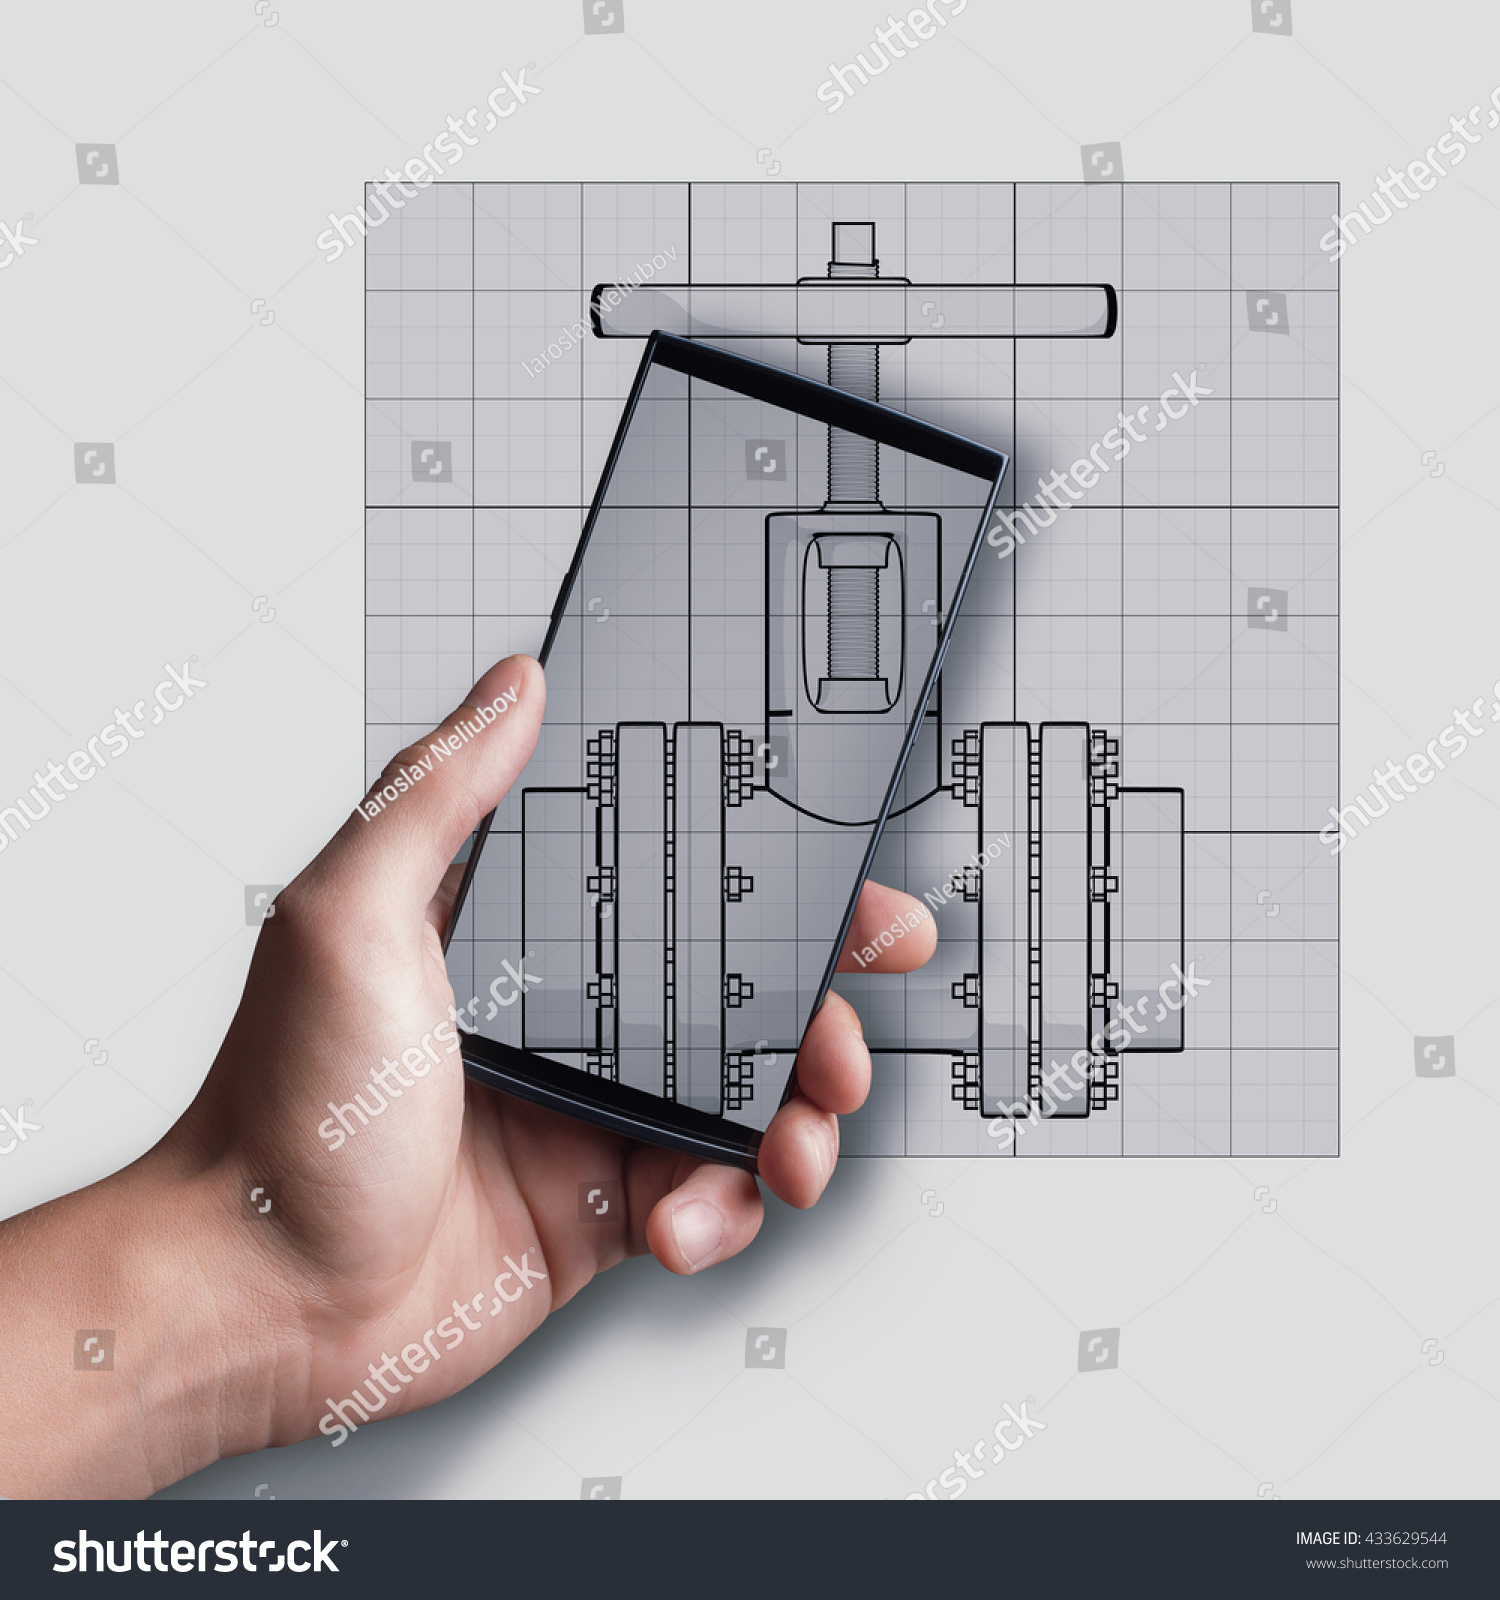 cad vs hand drawing What is cad drawing cad stands for computer-aided design and drafting and it refers to designing and documentating technical specs and plans in various engineering fields.